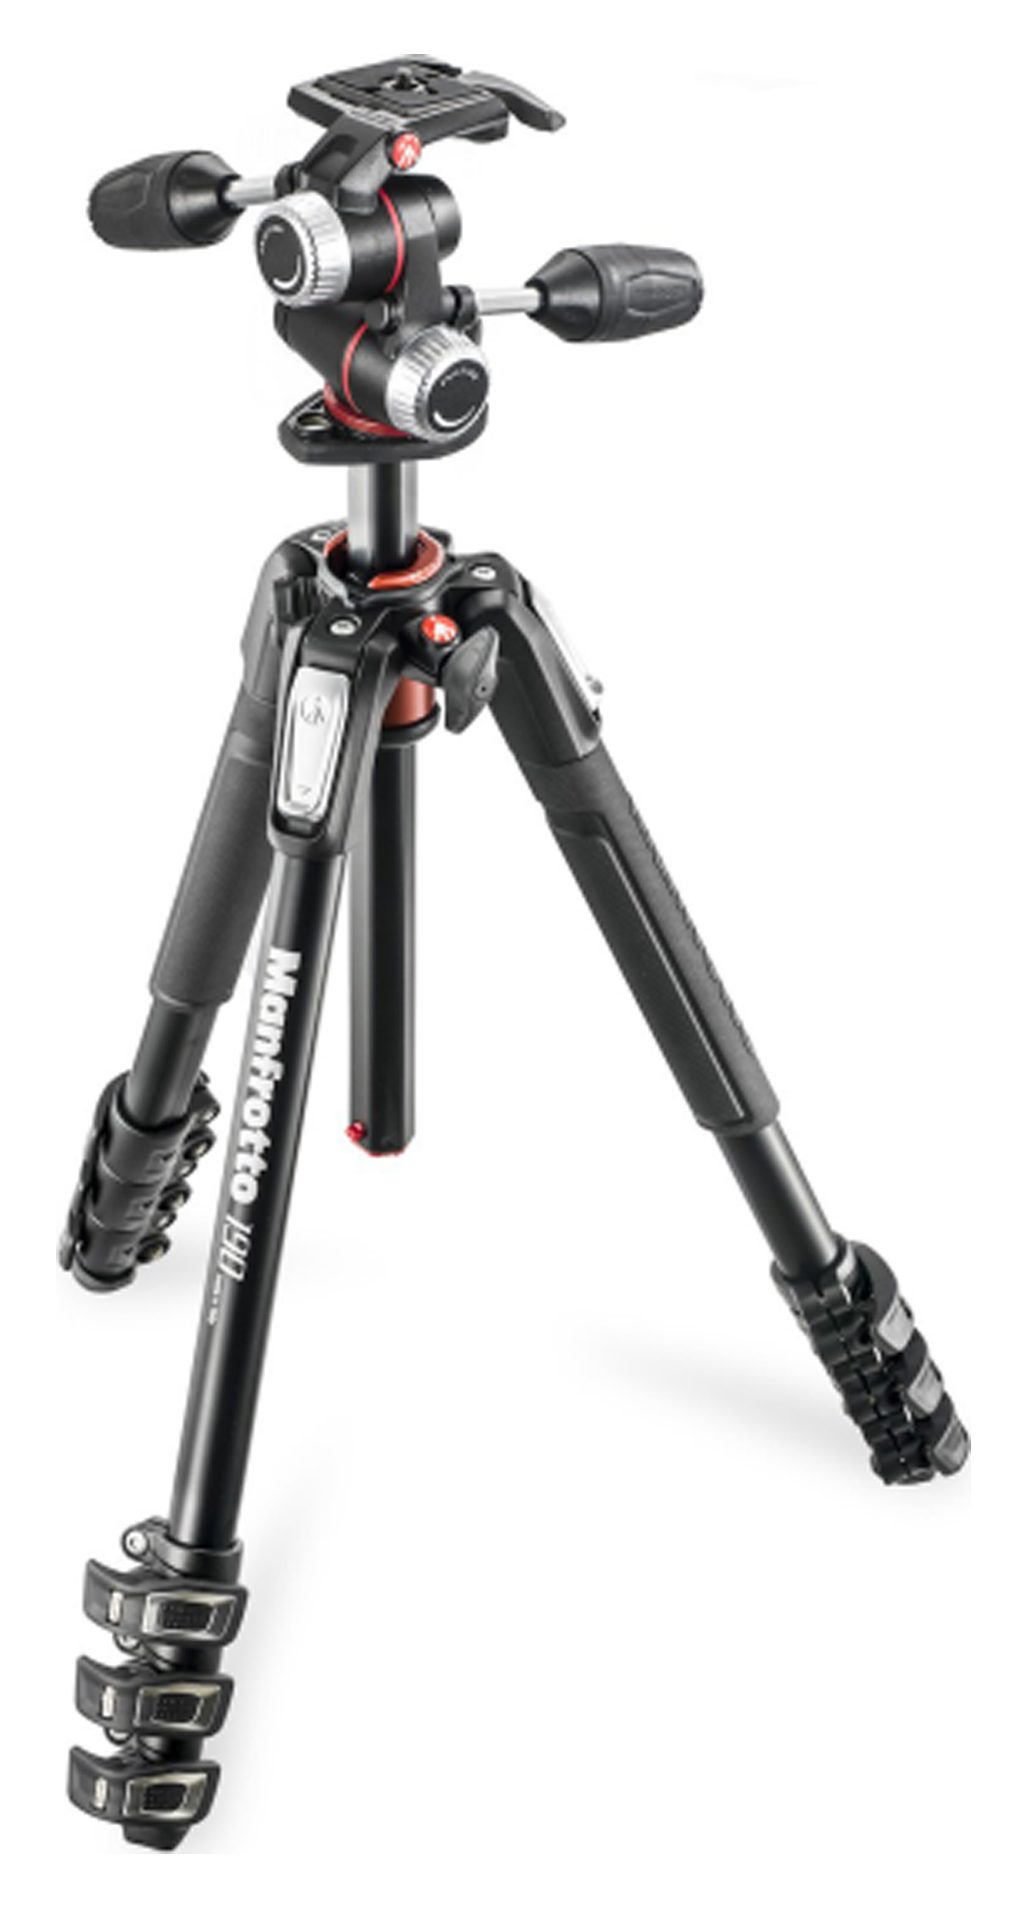 Manfrotto 190 Aluminum 4-Section Tripod with MHXPRO 3-Way